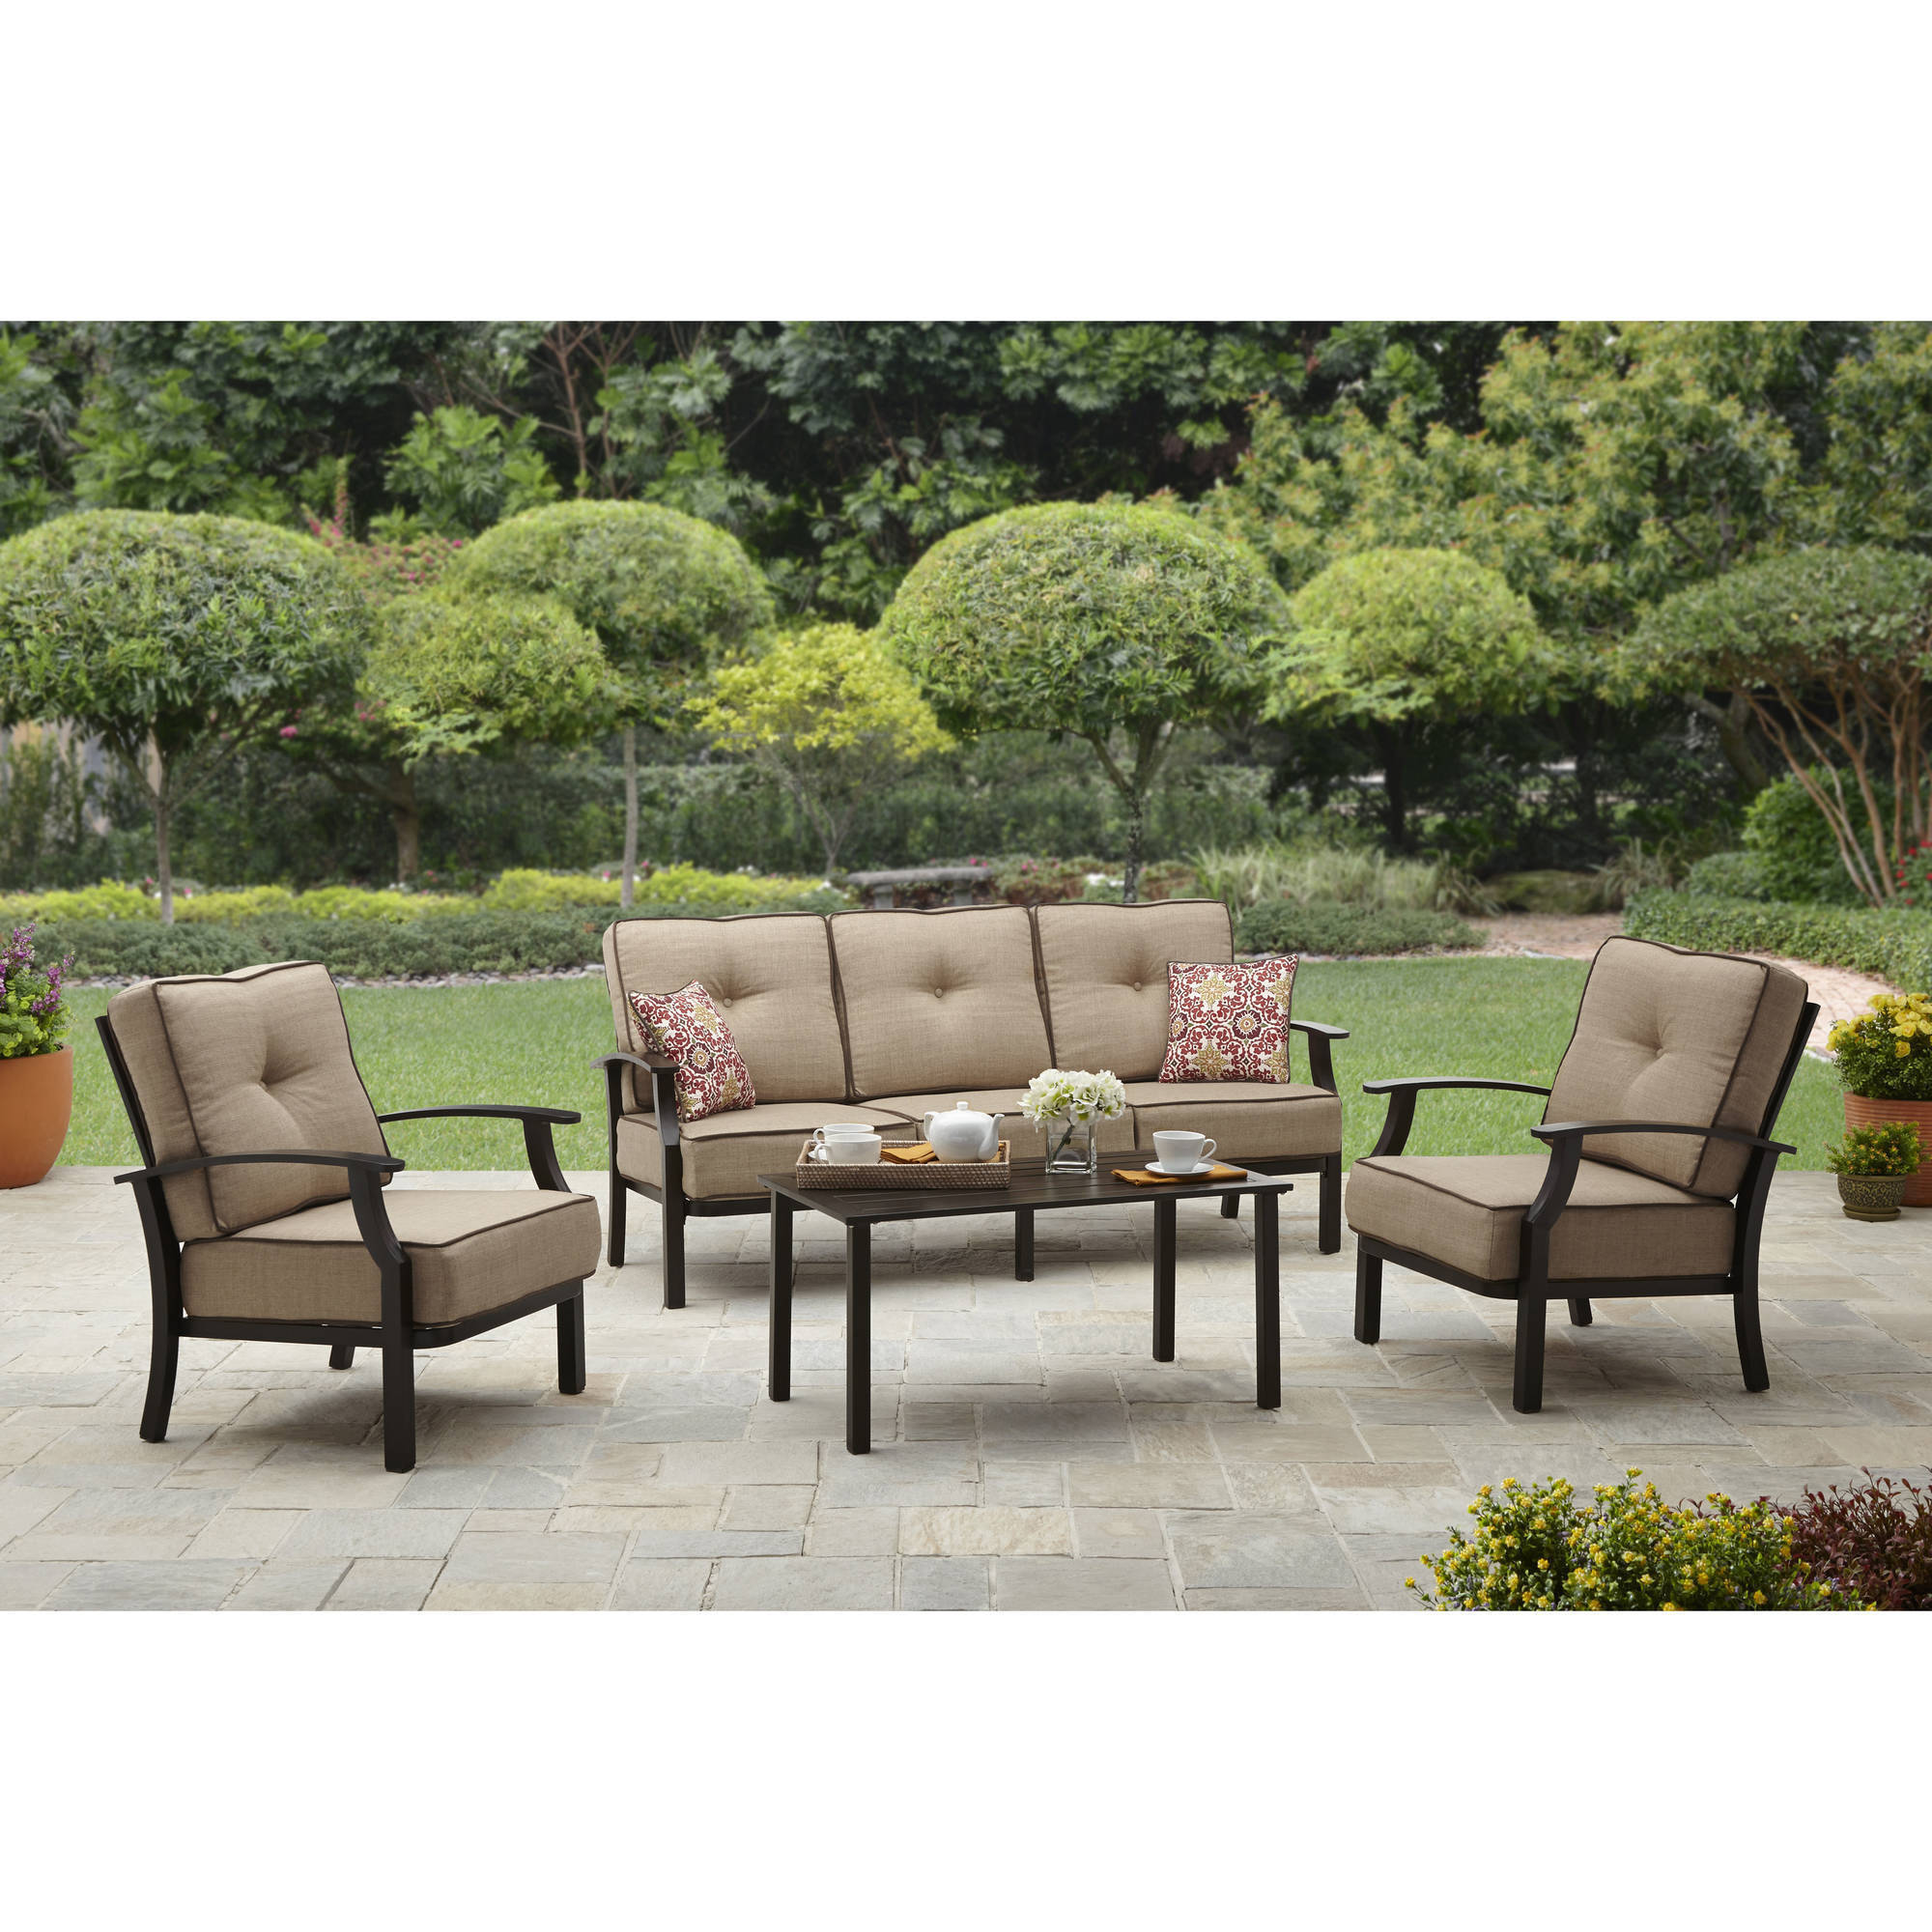 Attirant Better Homes And Gardens Carter Hills Outdoor Conversation Set